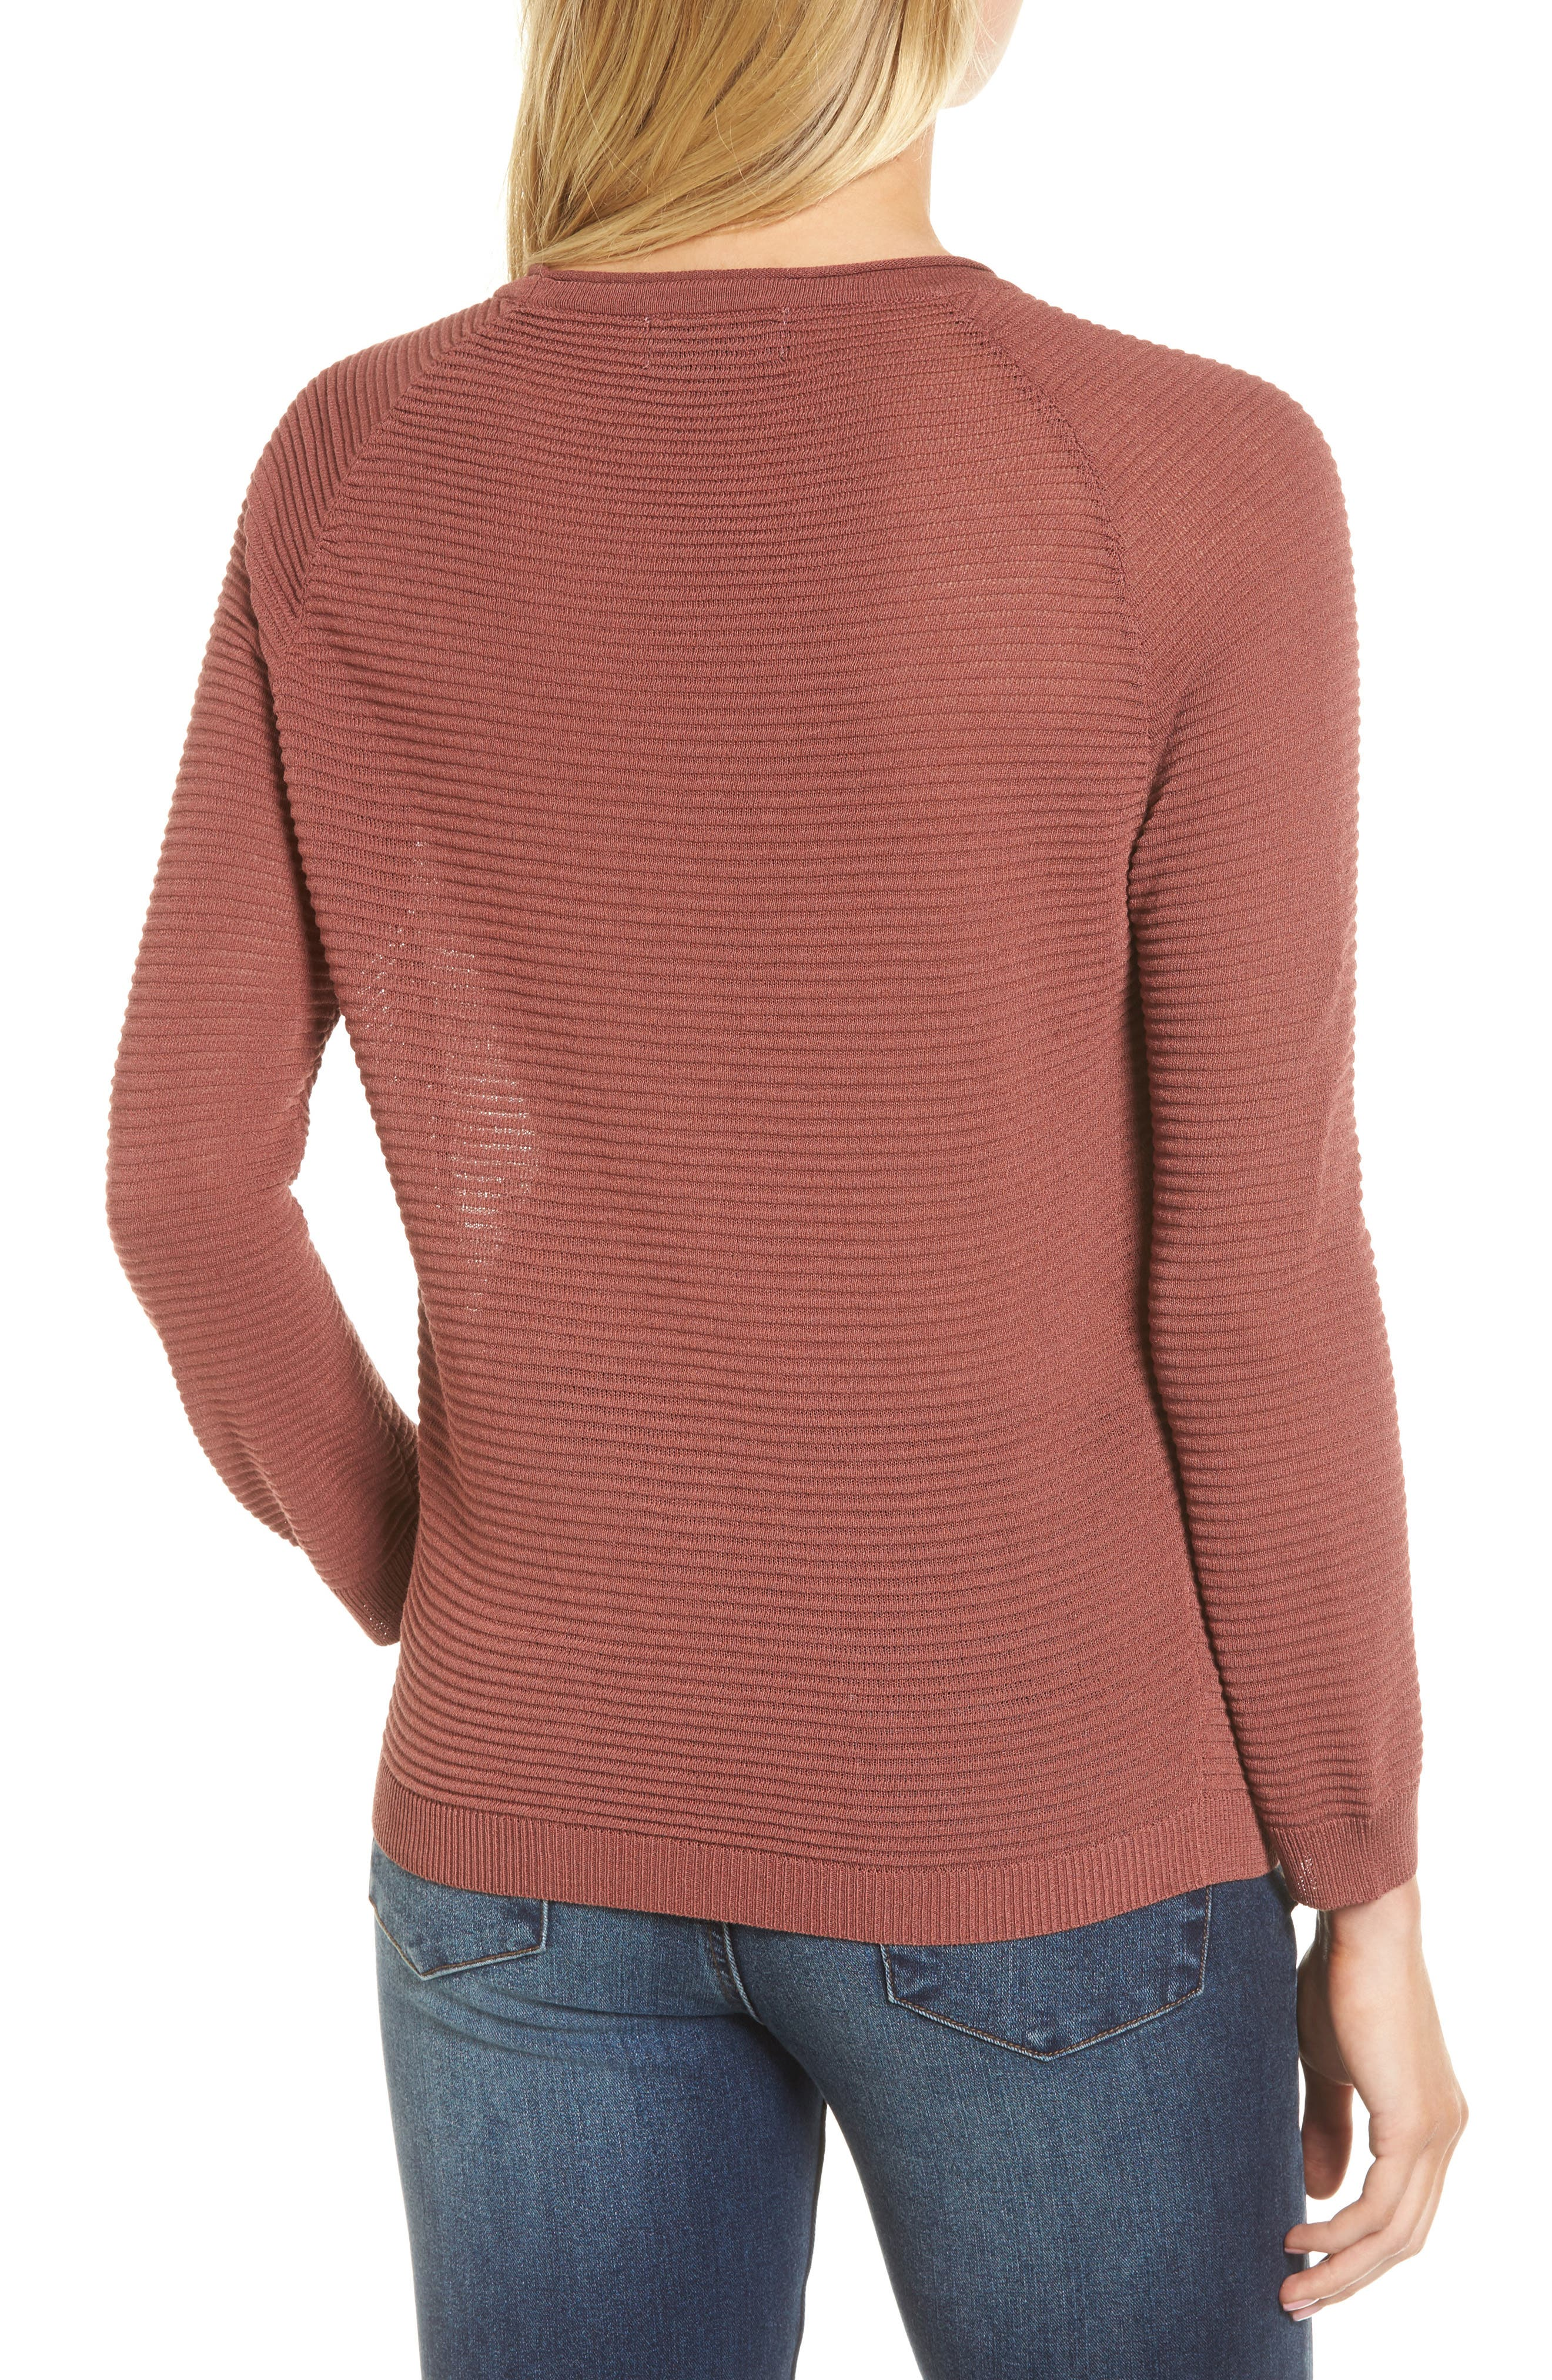 Ribbed Sweatshirt,                             Alternate thumbnail 3, color,                             Dusty Copper